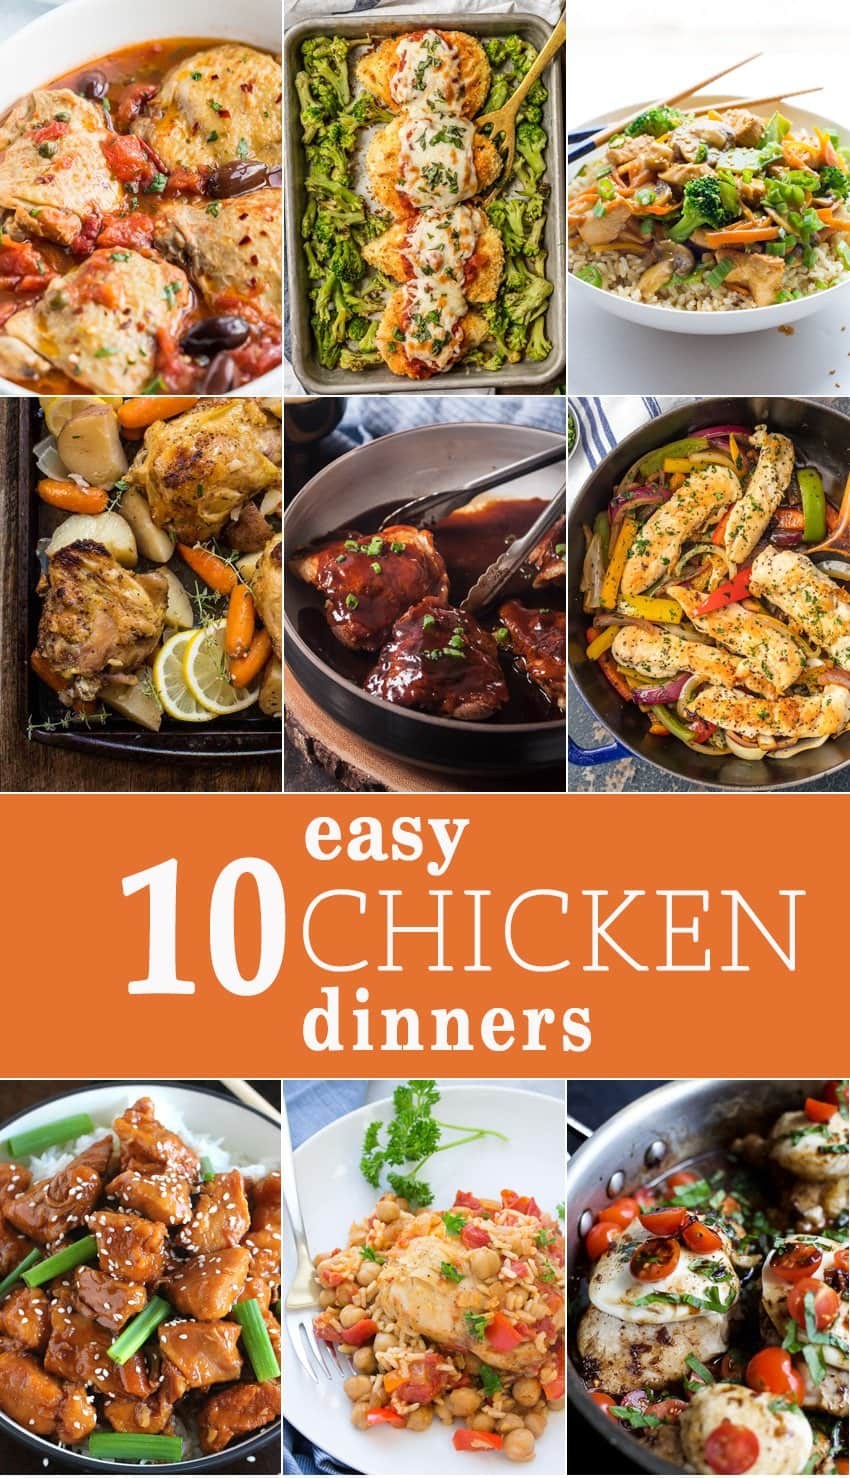 10 Easy Chicken Dinners - The Cookie Rookie®